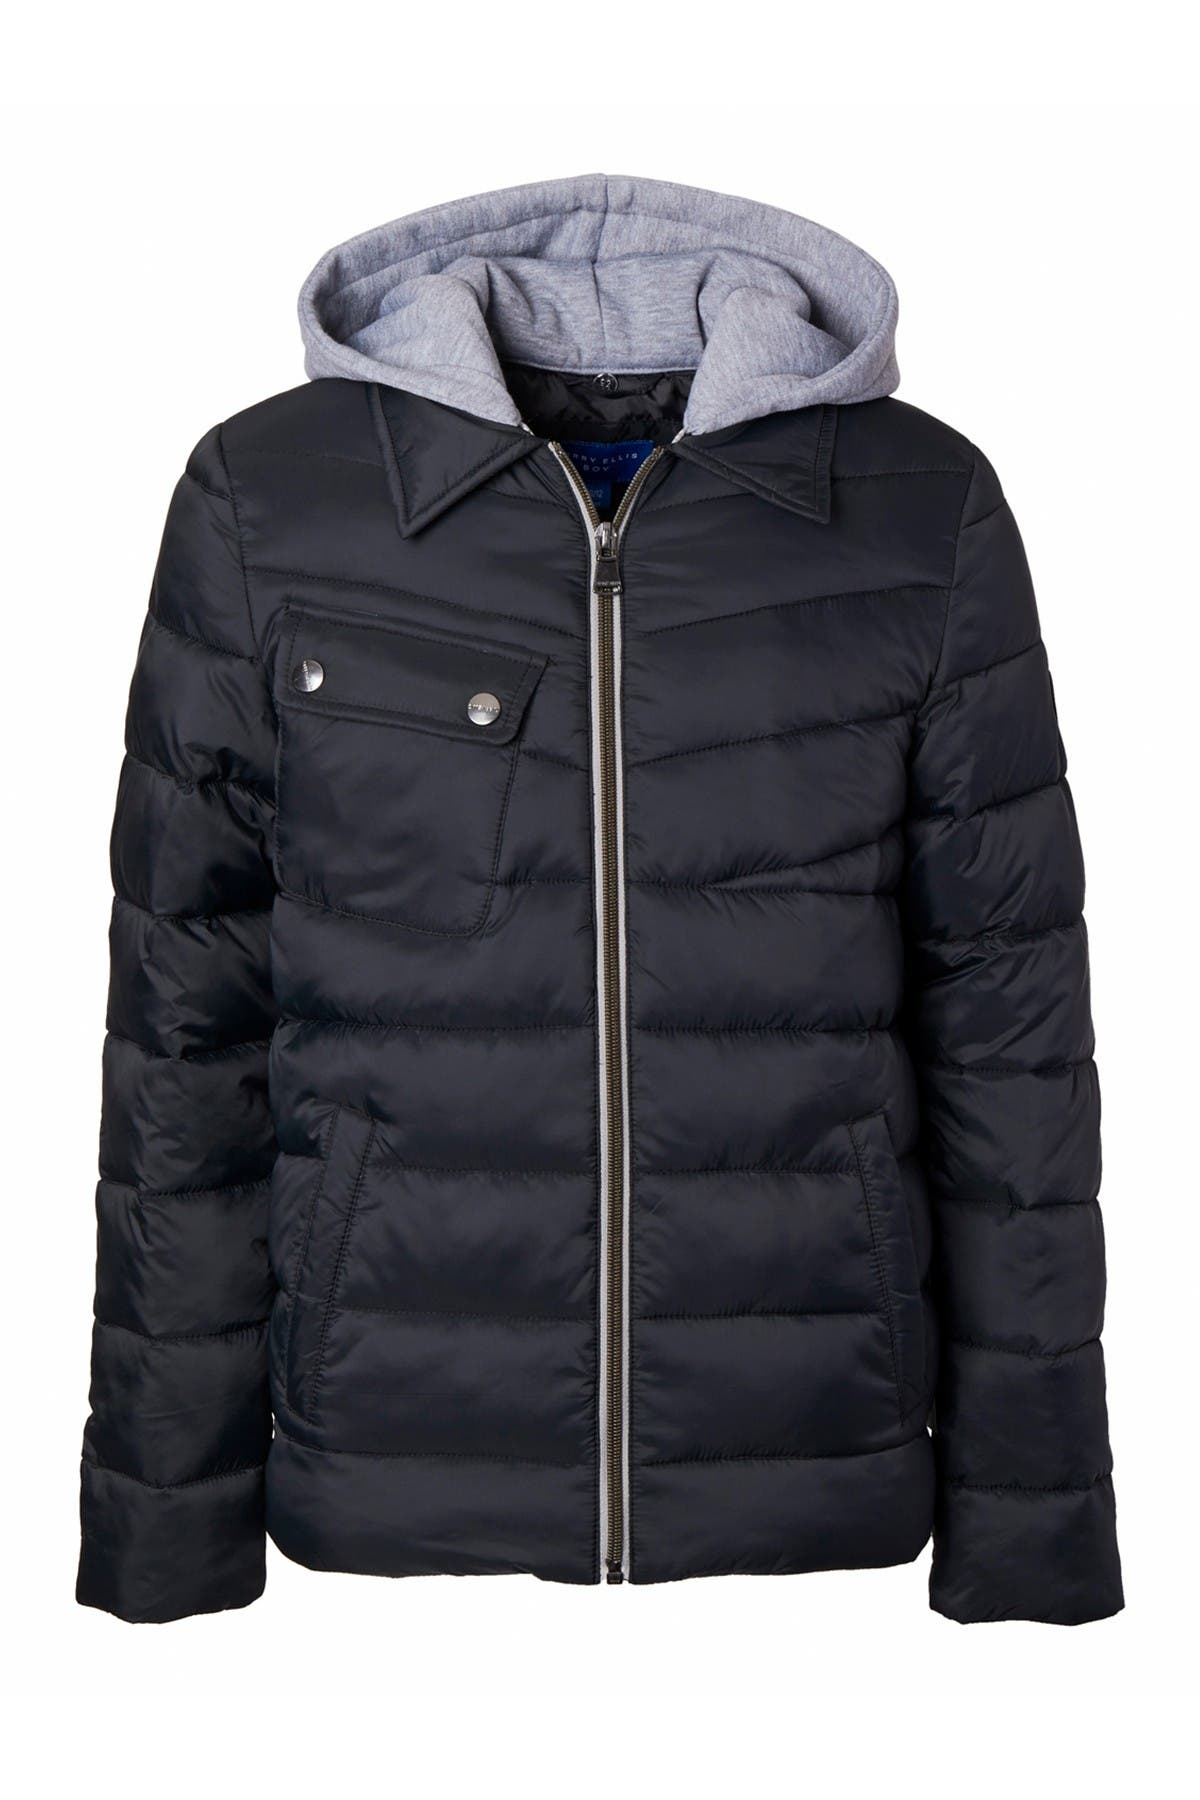 Image of Perry Ellis Quilted Knit Hood Jacket